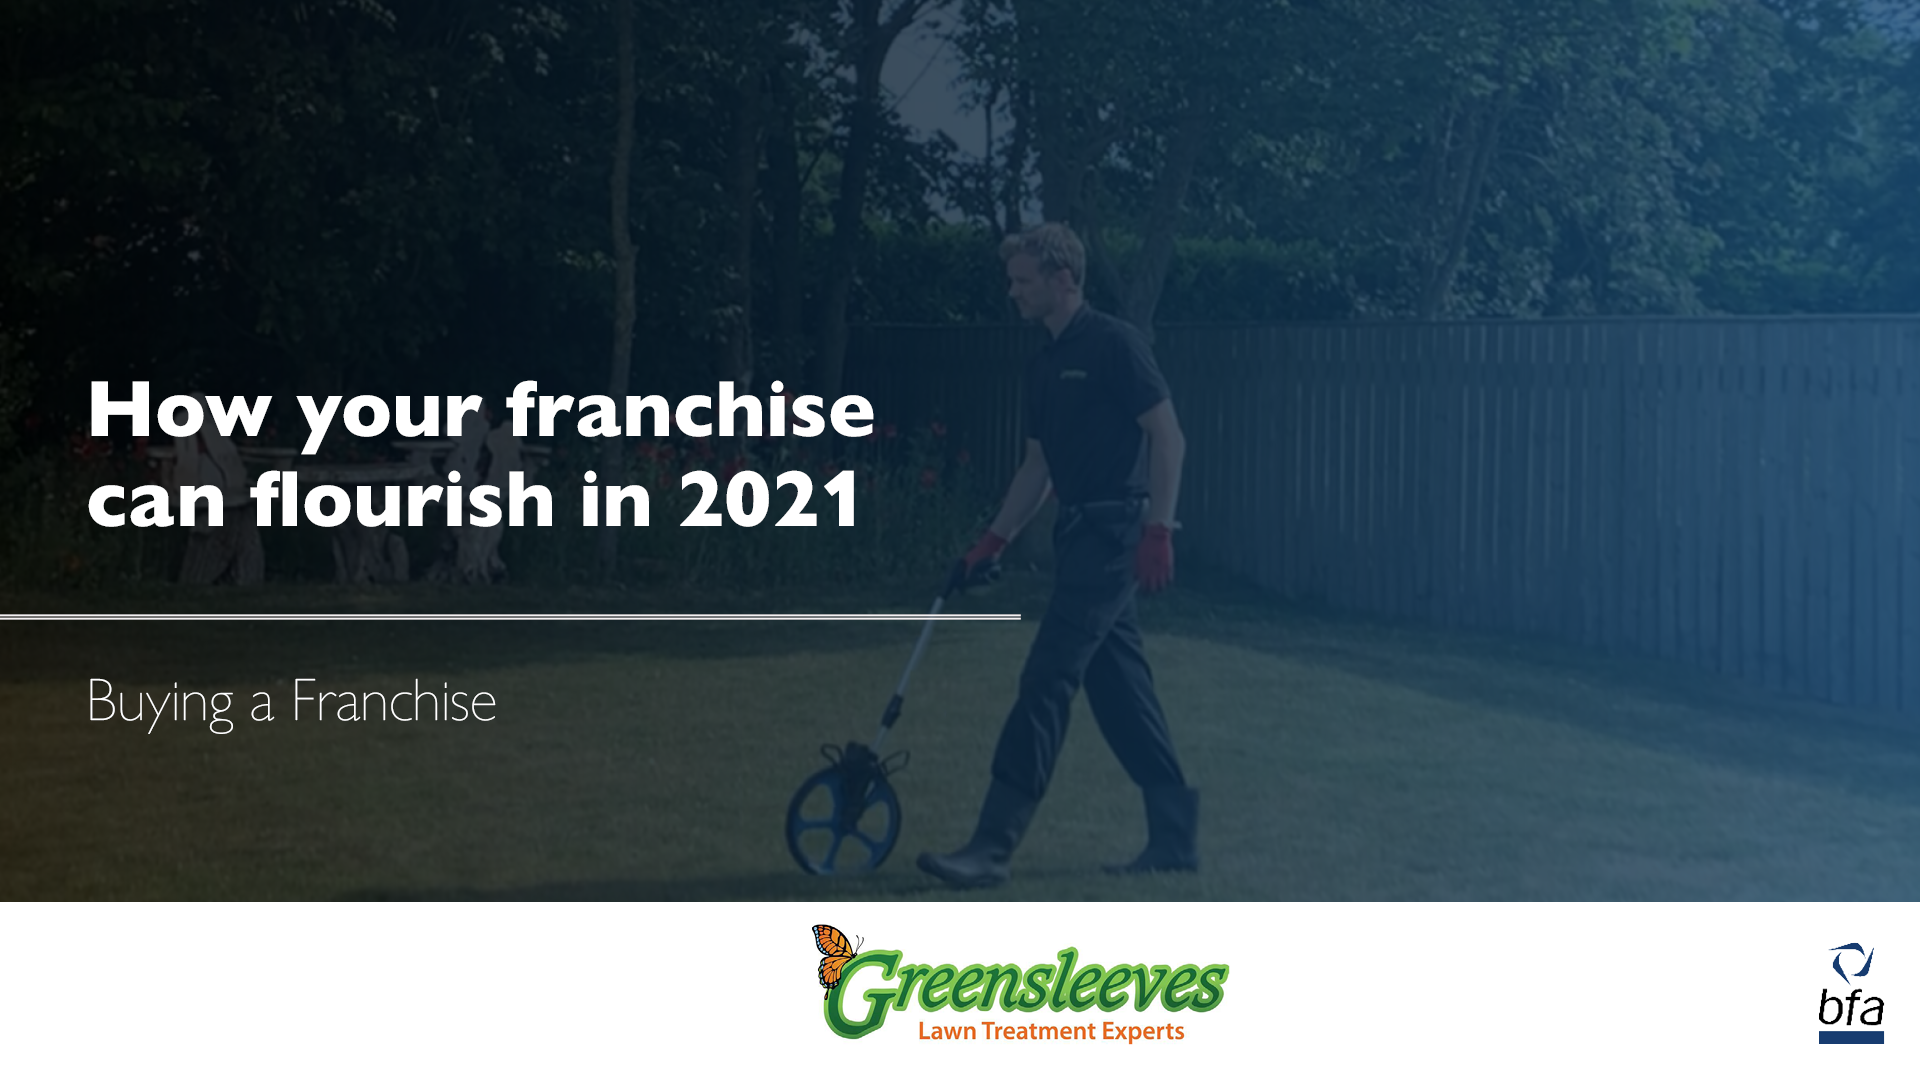 How your franchise can flourish in 2021